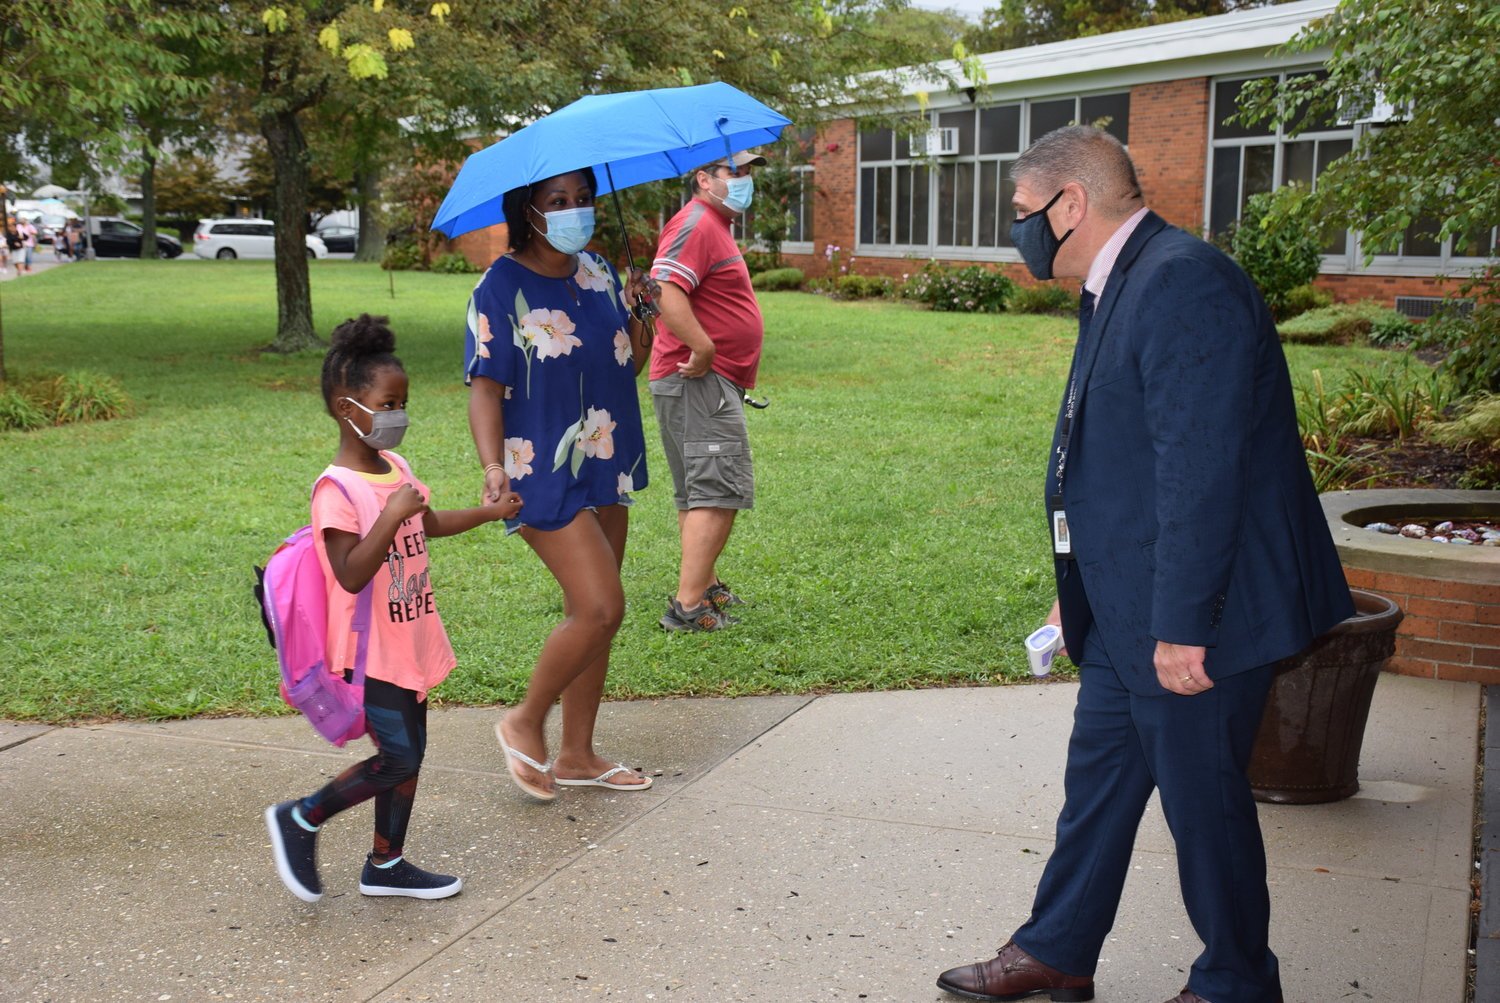 Dave Casamento, the assistant superintendent of curriculum and instruction, welcomed students to Bowling Green Elementary School in the East Meadow School District on Sept. 10.